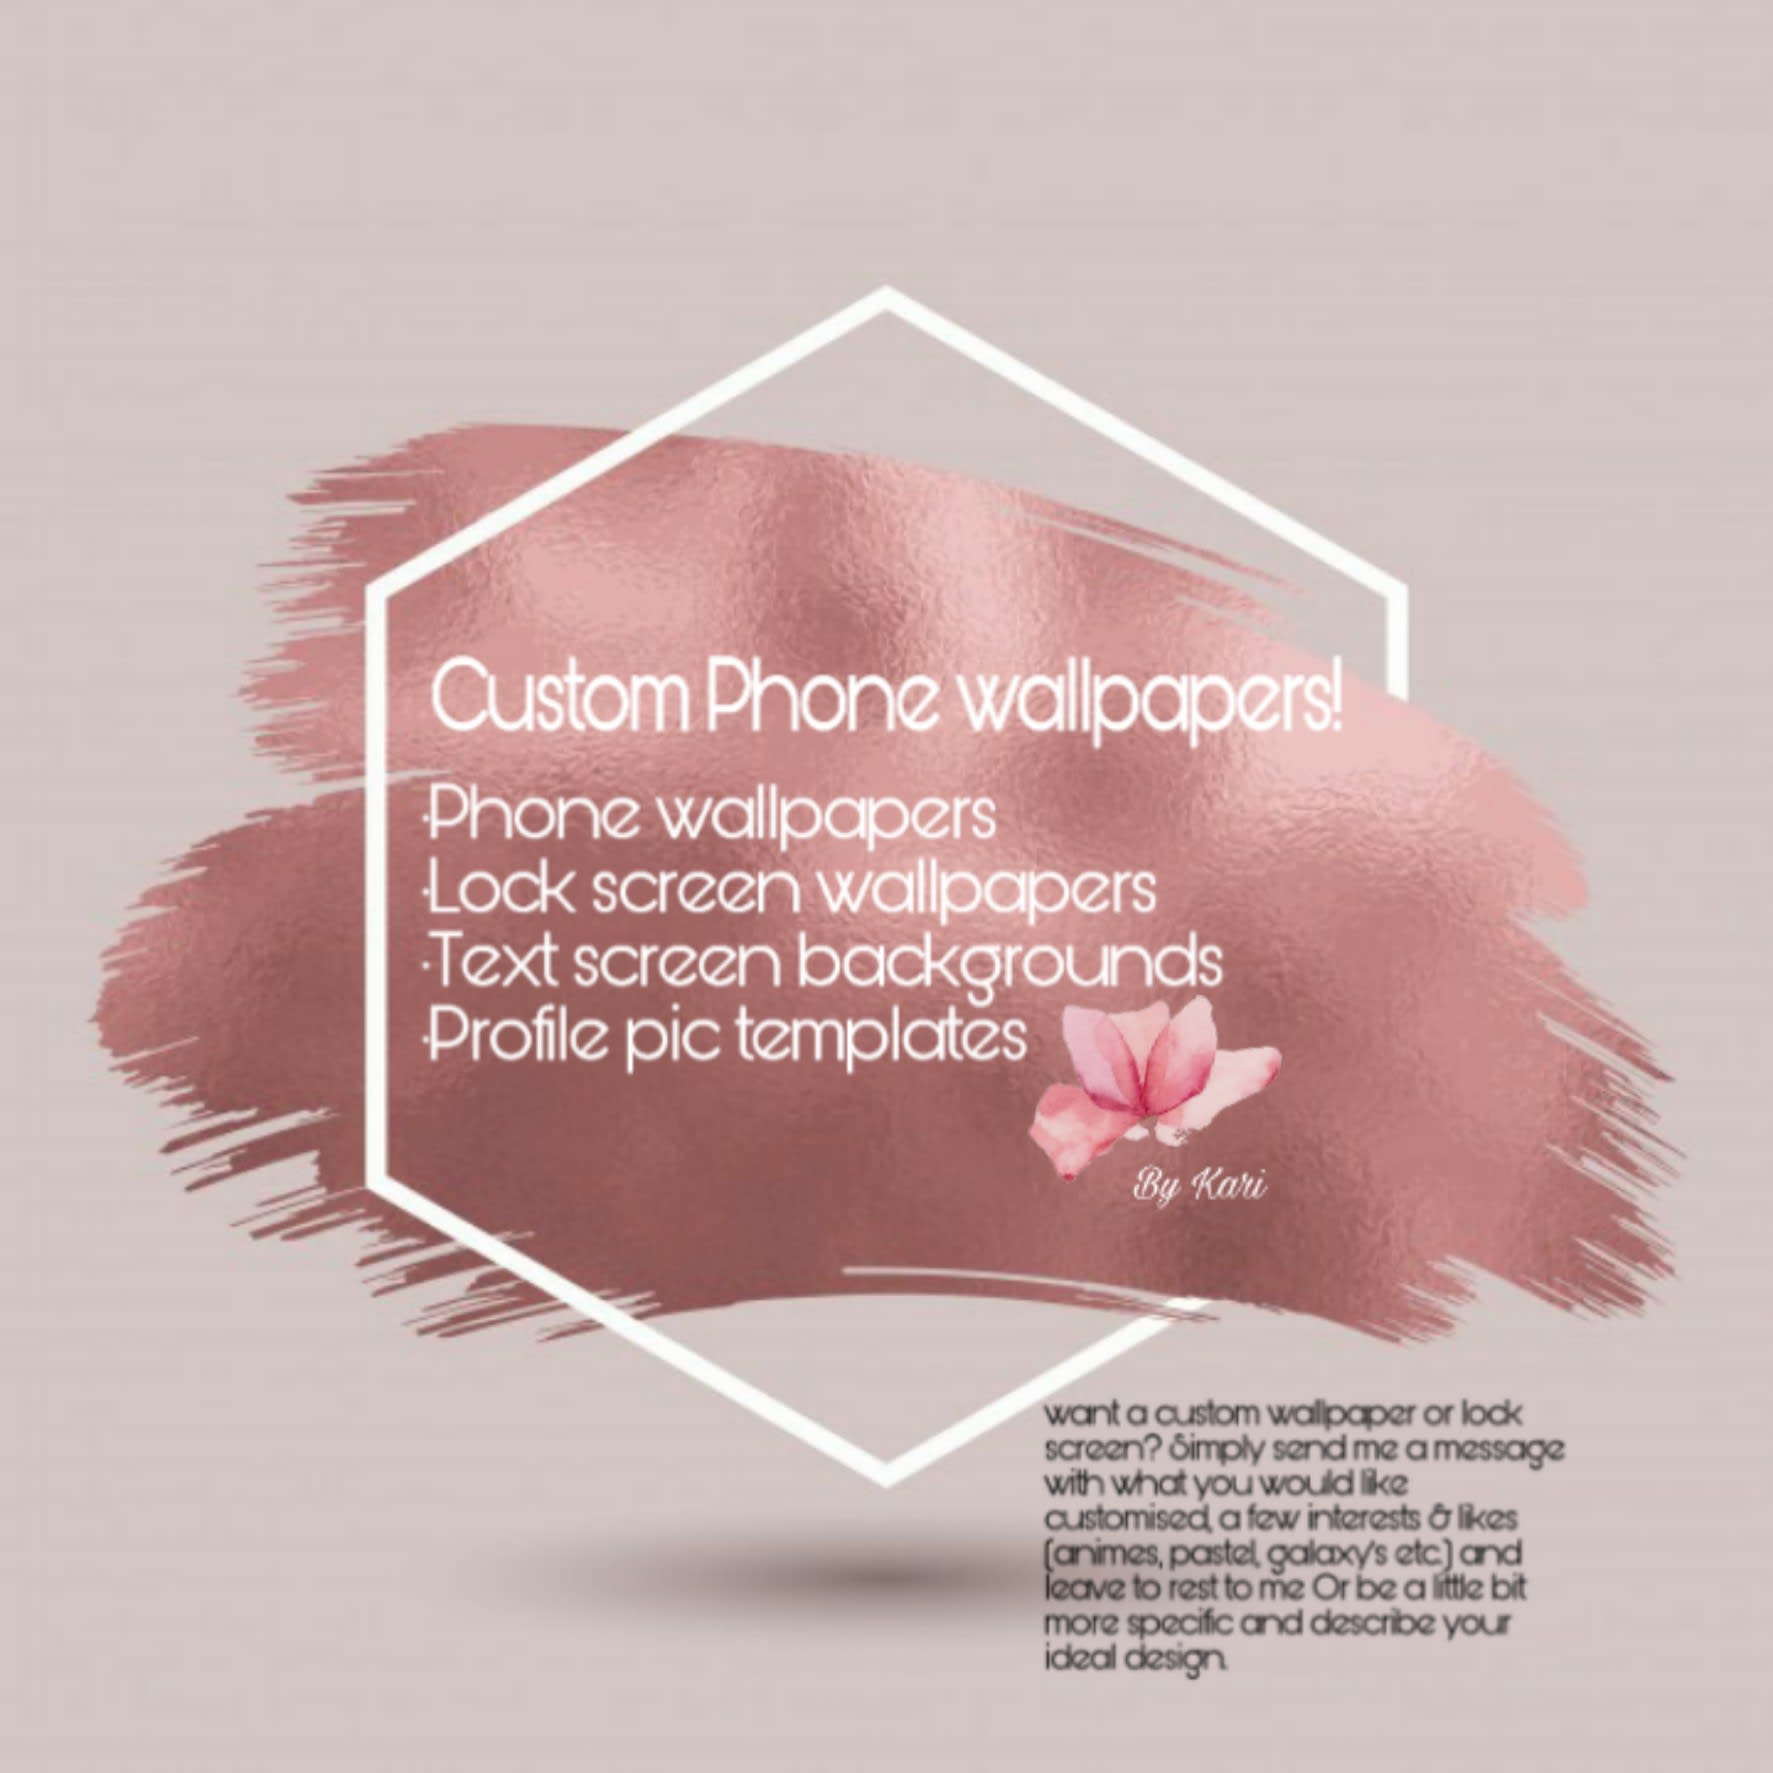 create custom wallpapers for your smartphone